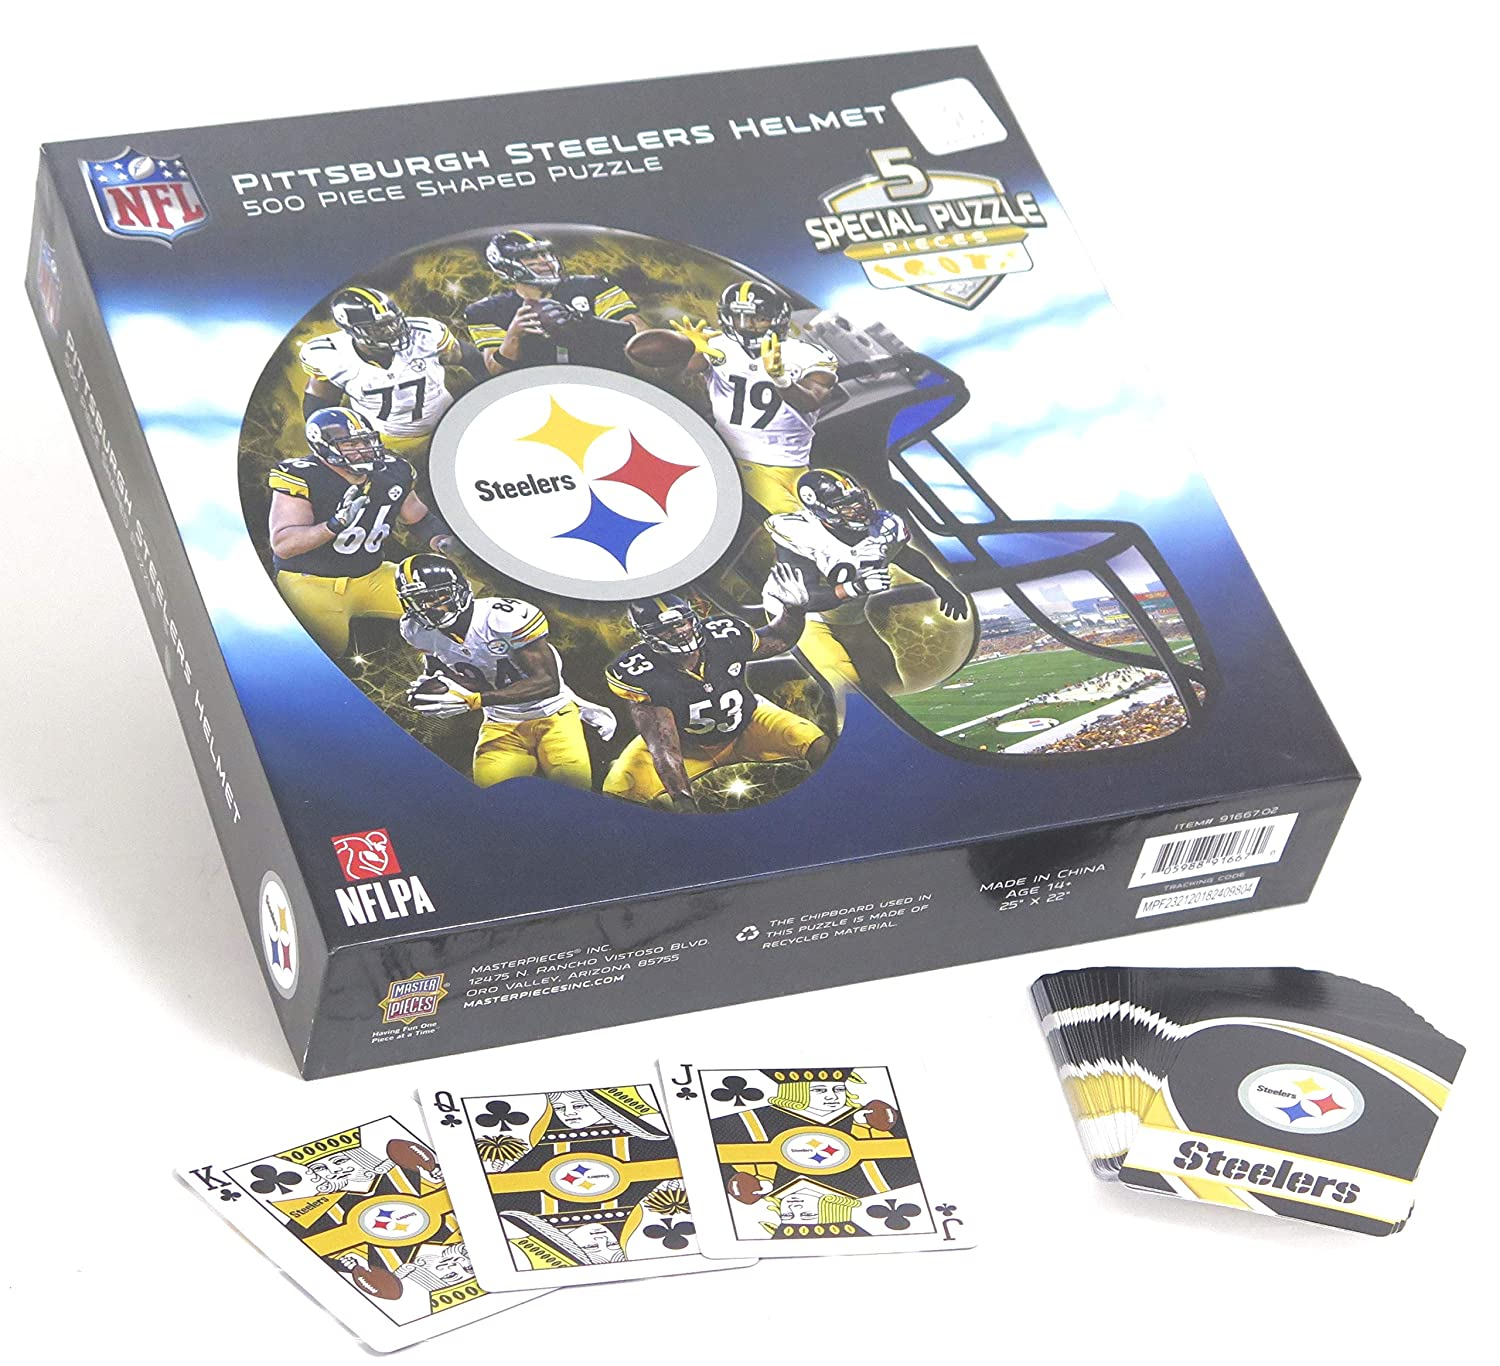 Pittsburgh Steelers Fun Set Includes Helmet Shaped Puzzle 500 Pieces and a Steelers Playing Card Deck.